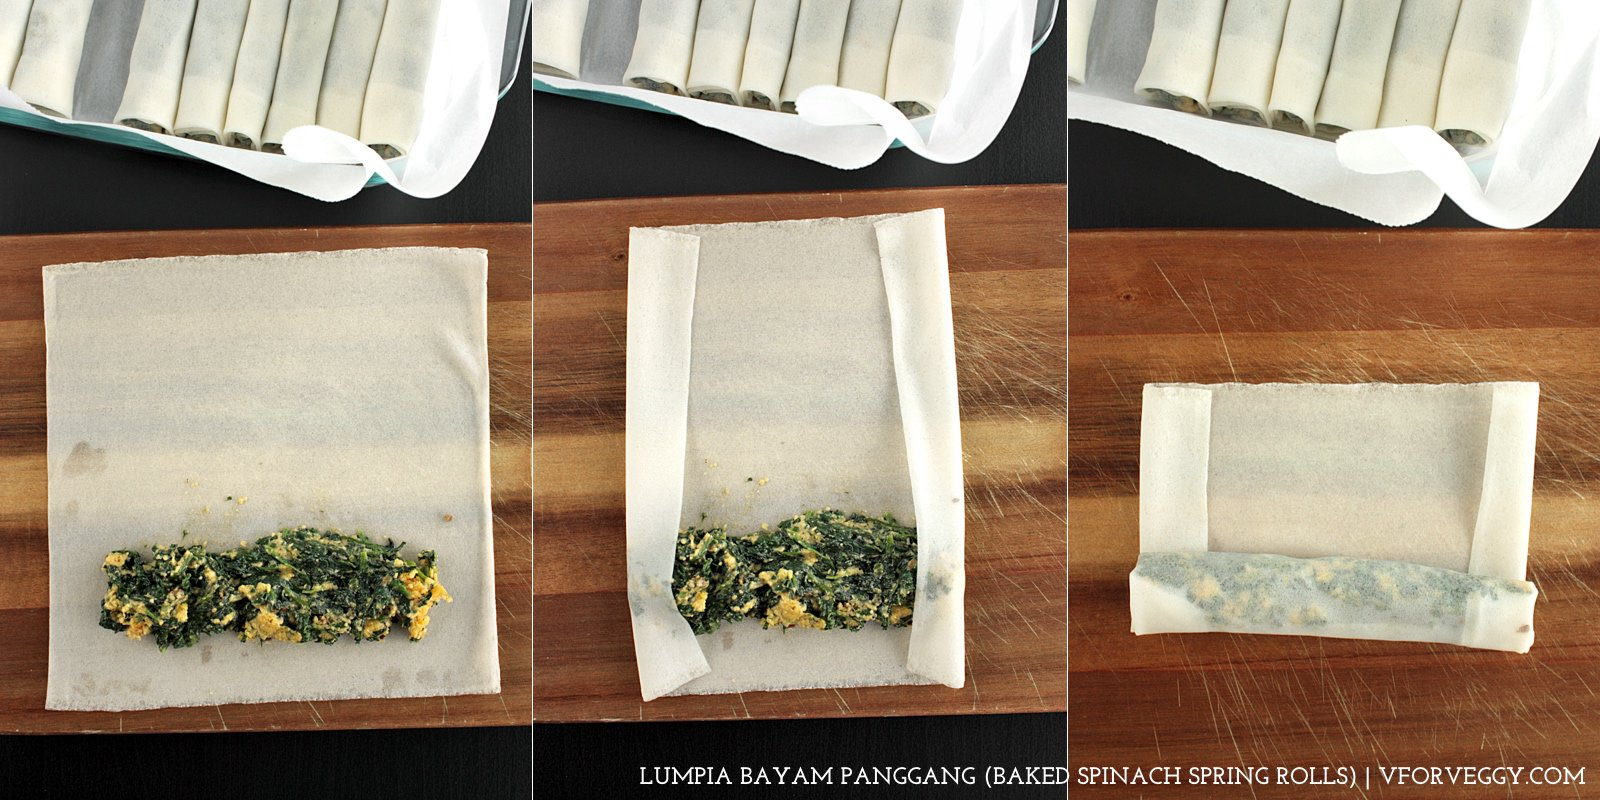 Shaping Spinach Spring Rolls (step-by-step)